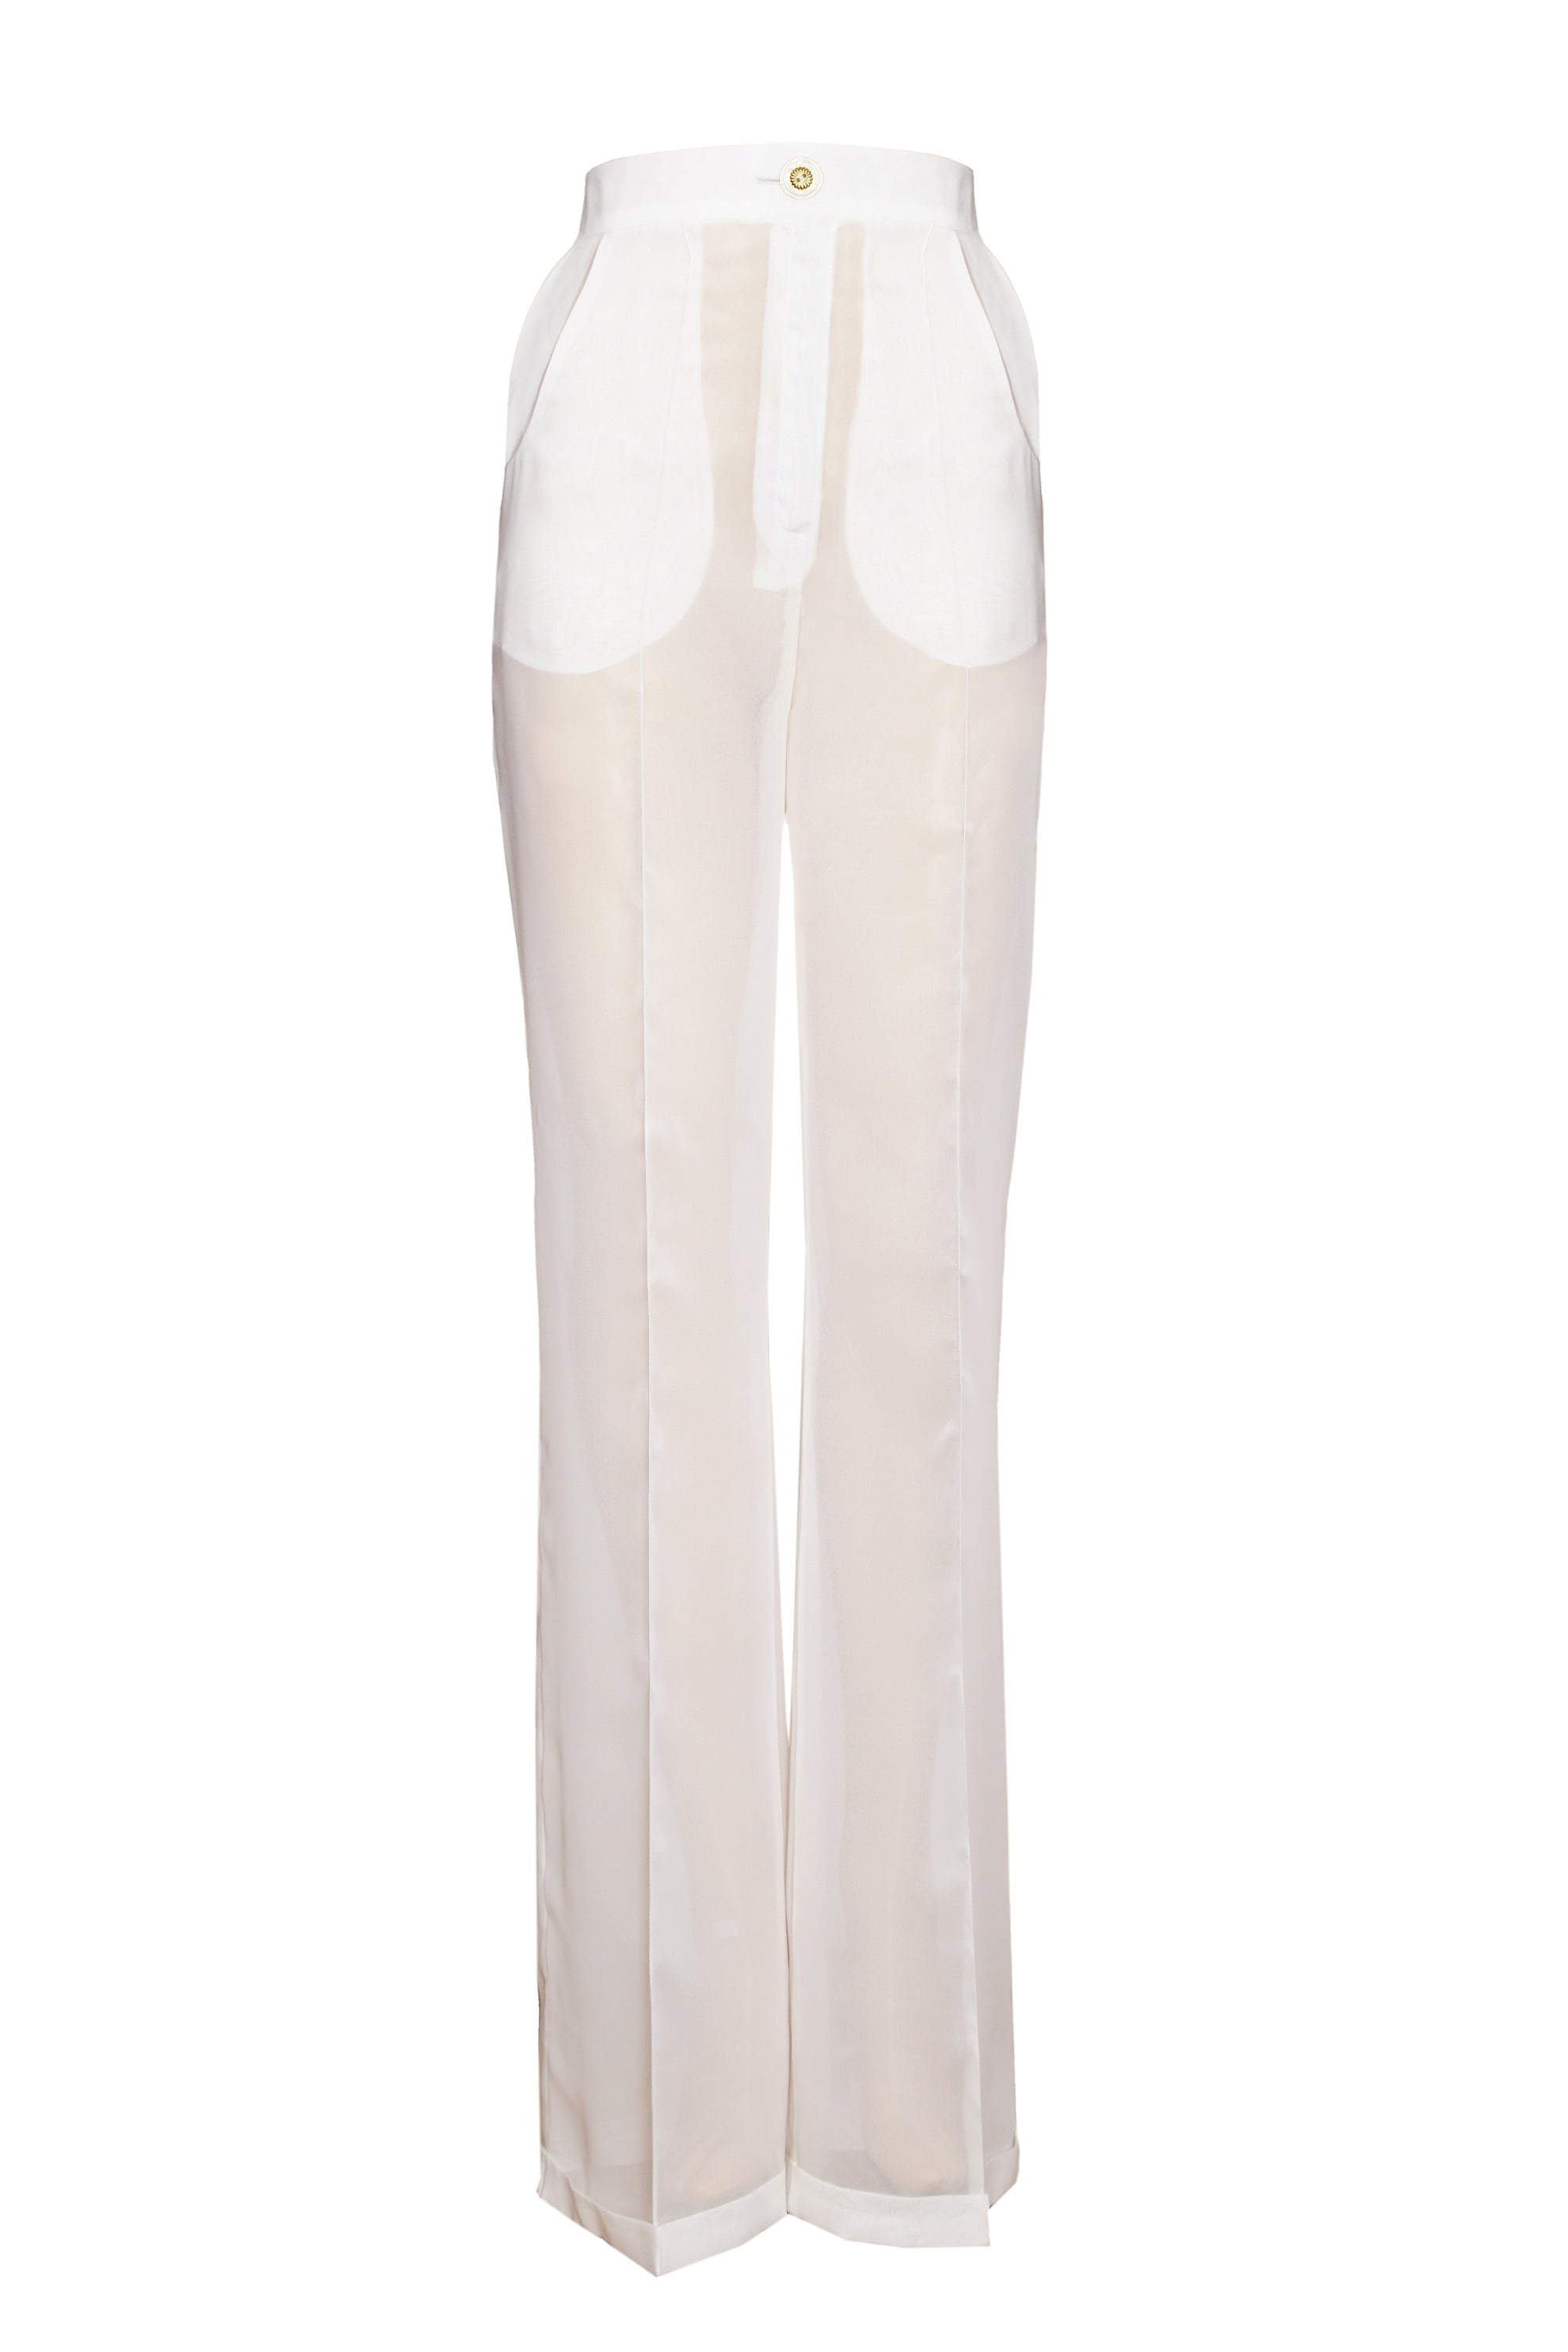 WHITE SILK CHIFFON TROUSERS WITH CREASE